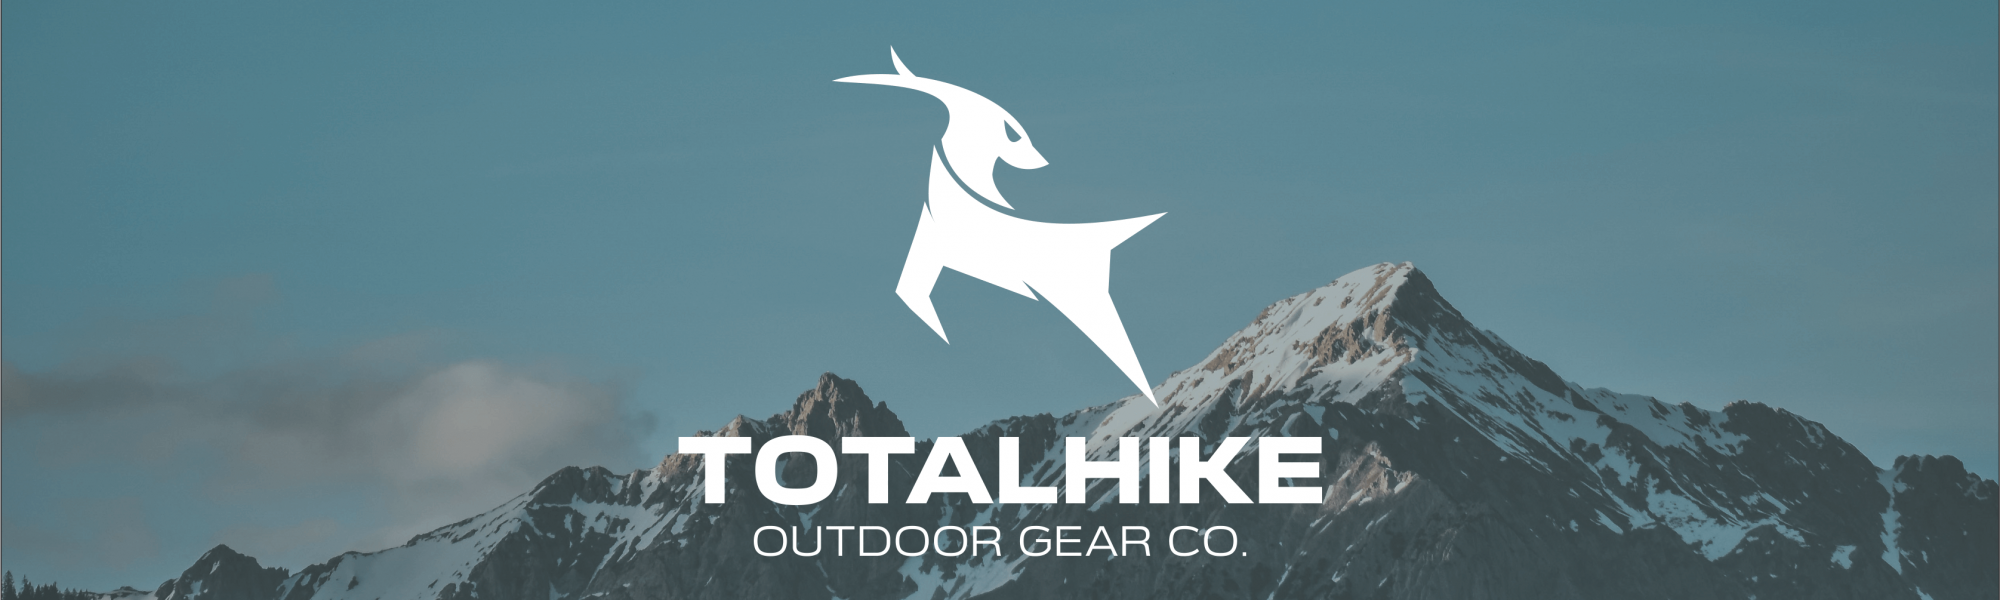 TOTALHIKE MOUNTAIN BACKGROUND